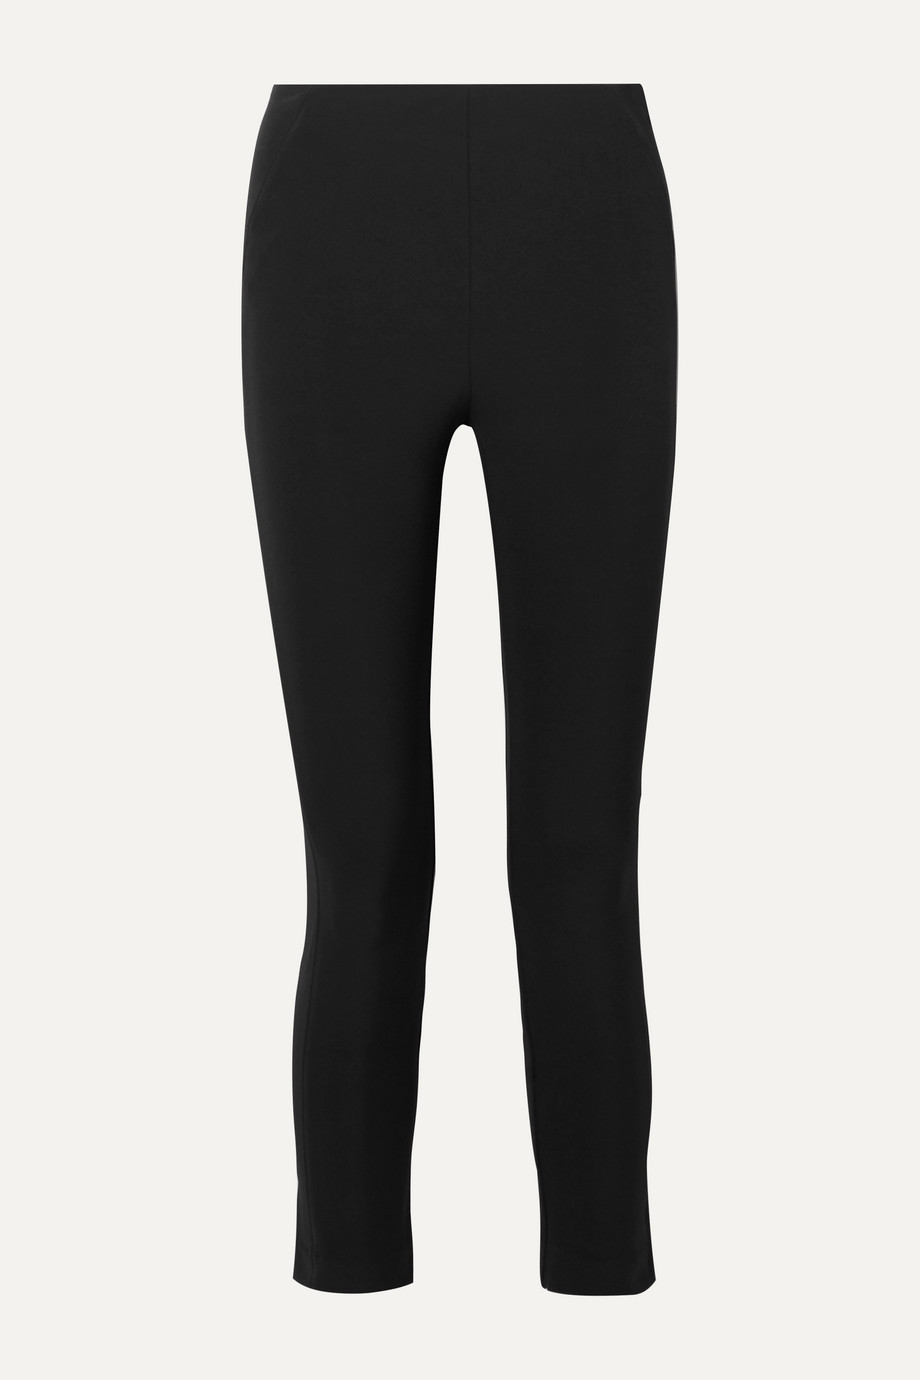 Veronica Beard Cropped stretch-crepe skinny pants